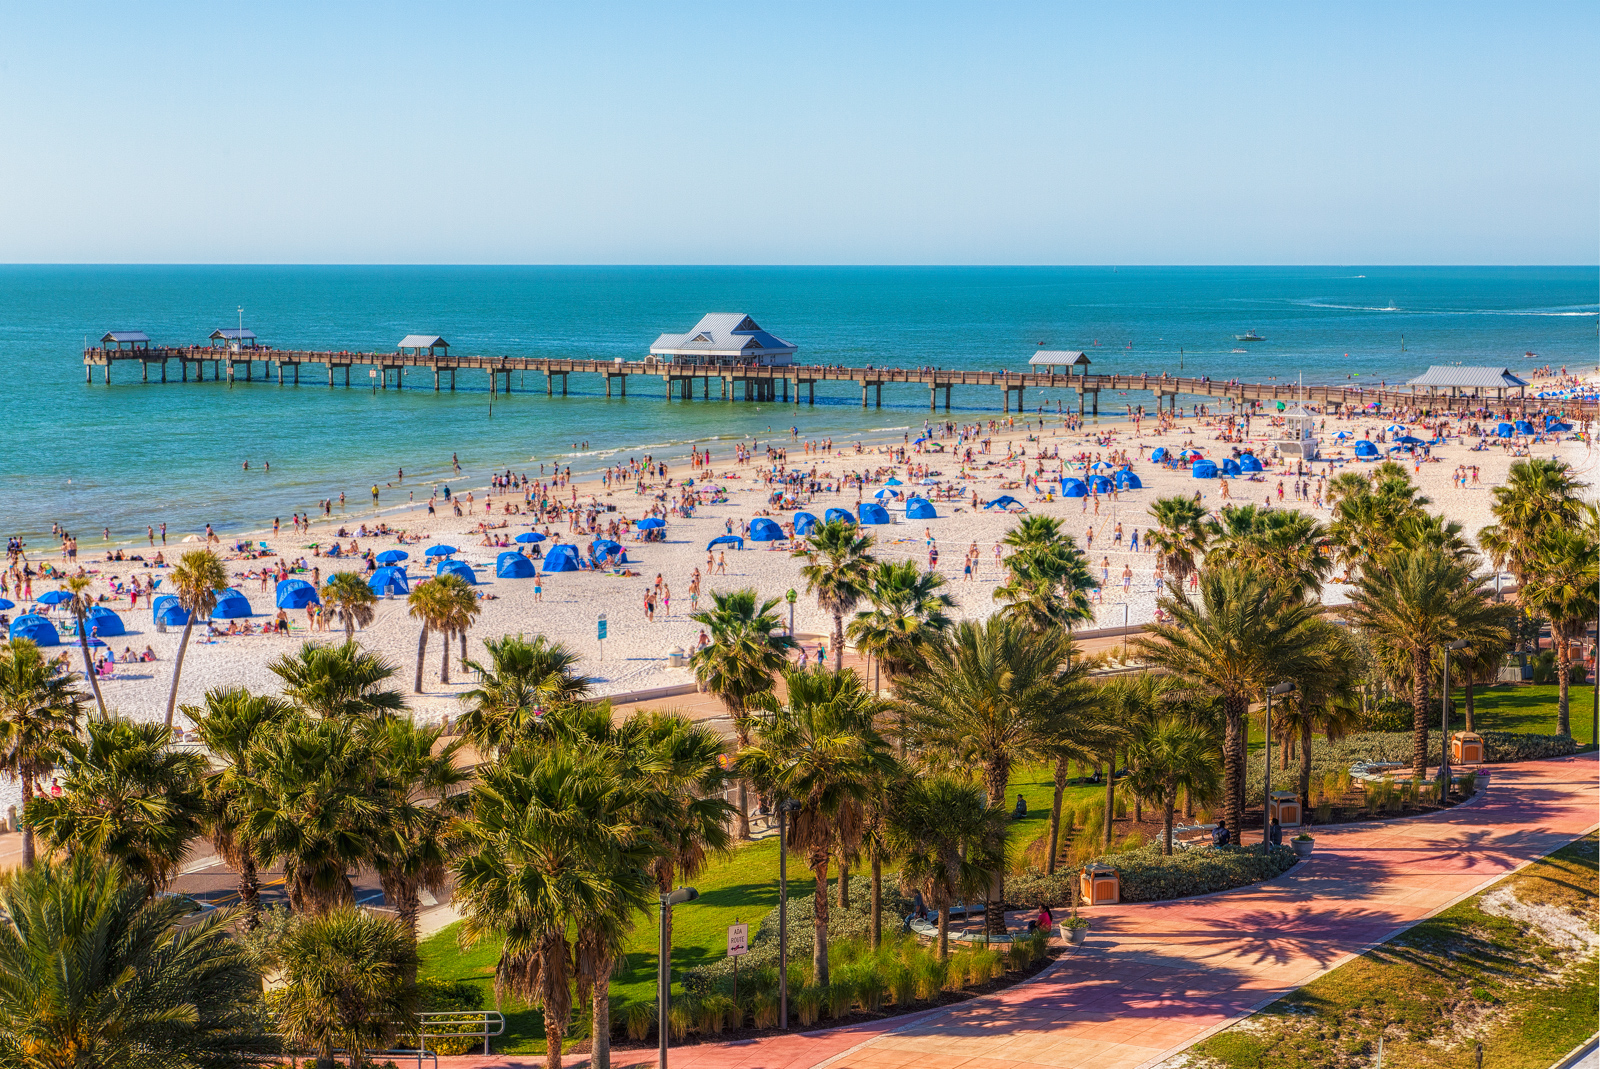 Clearwater Beach Spring Break from Above